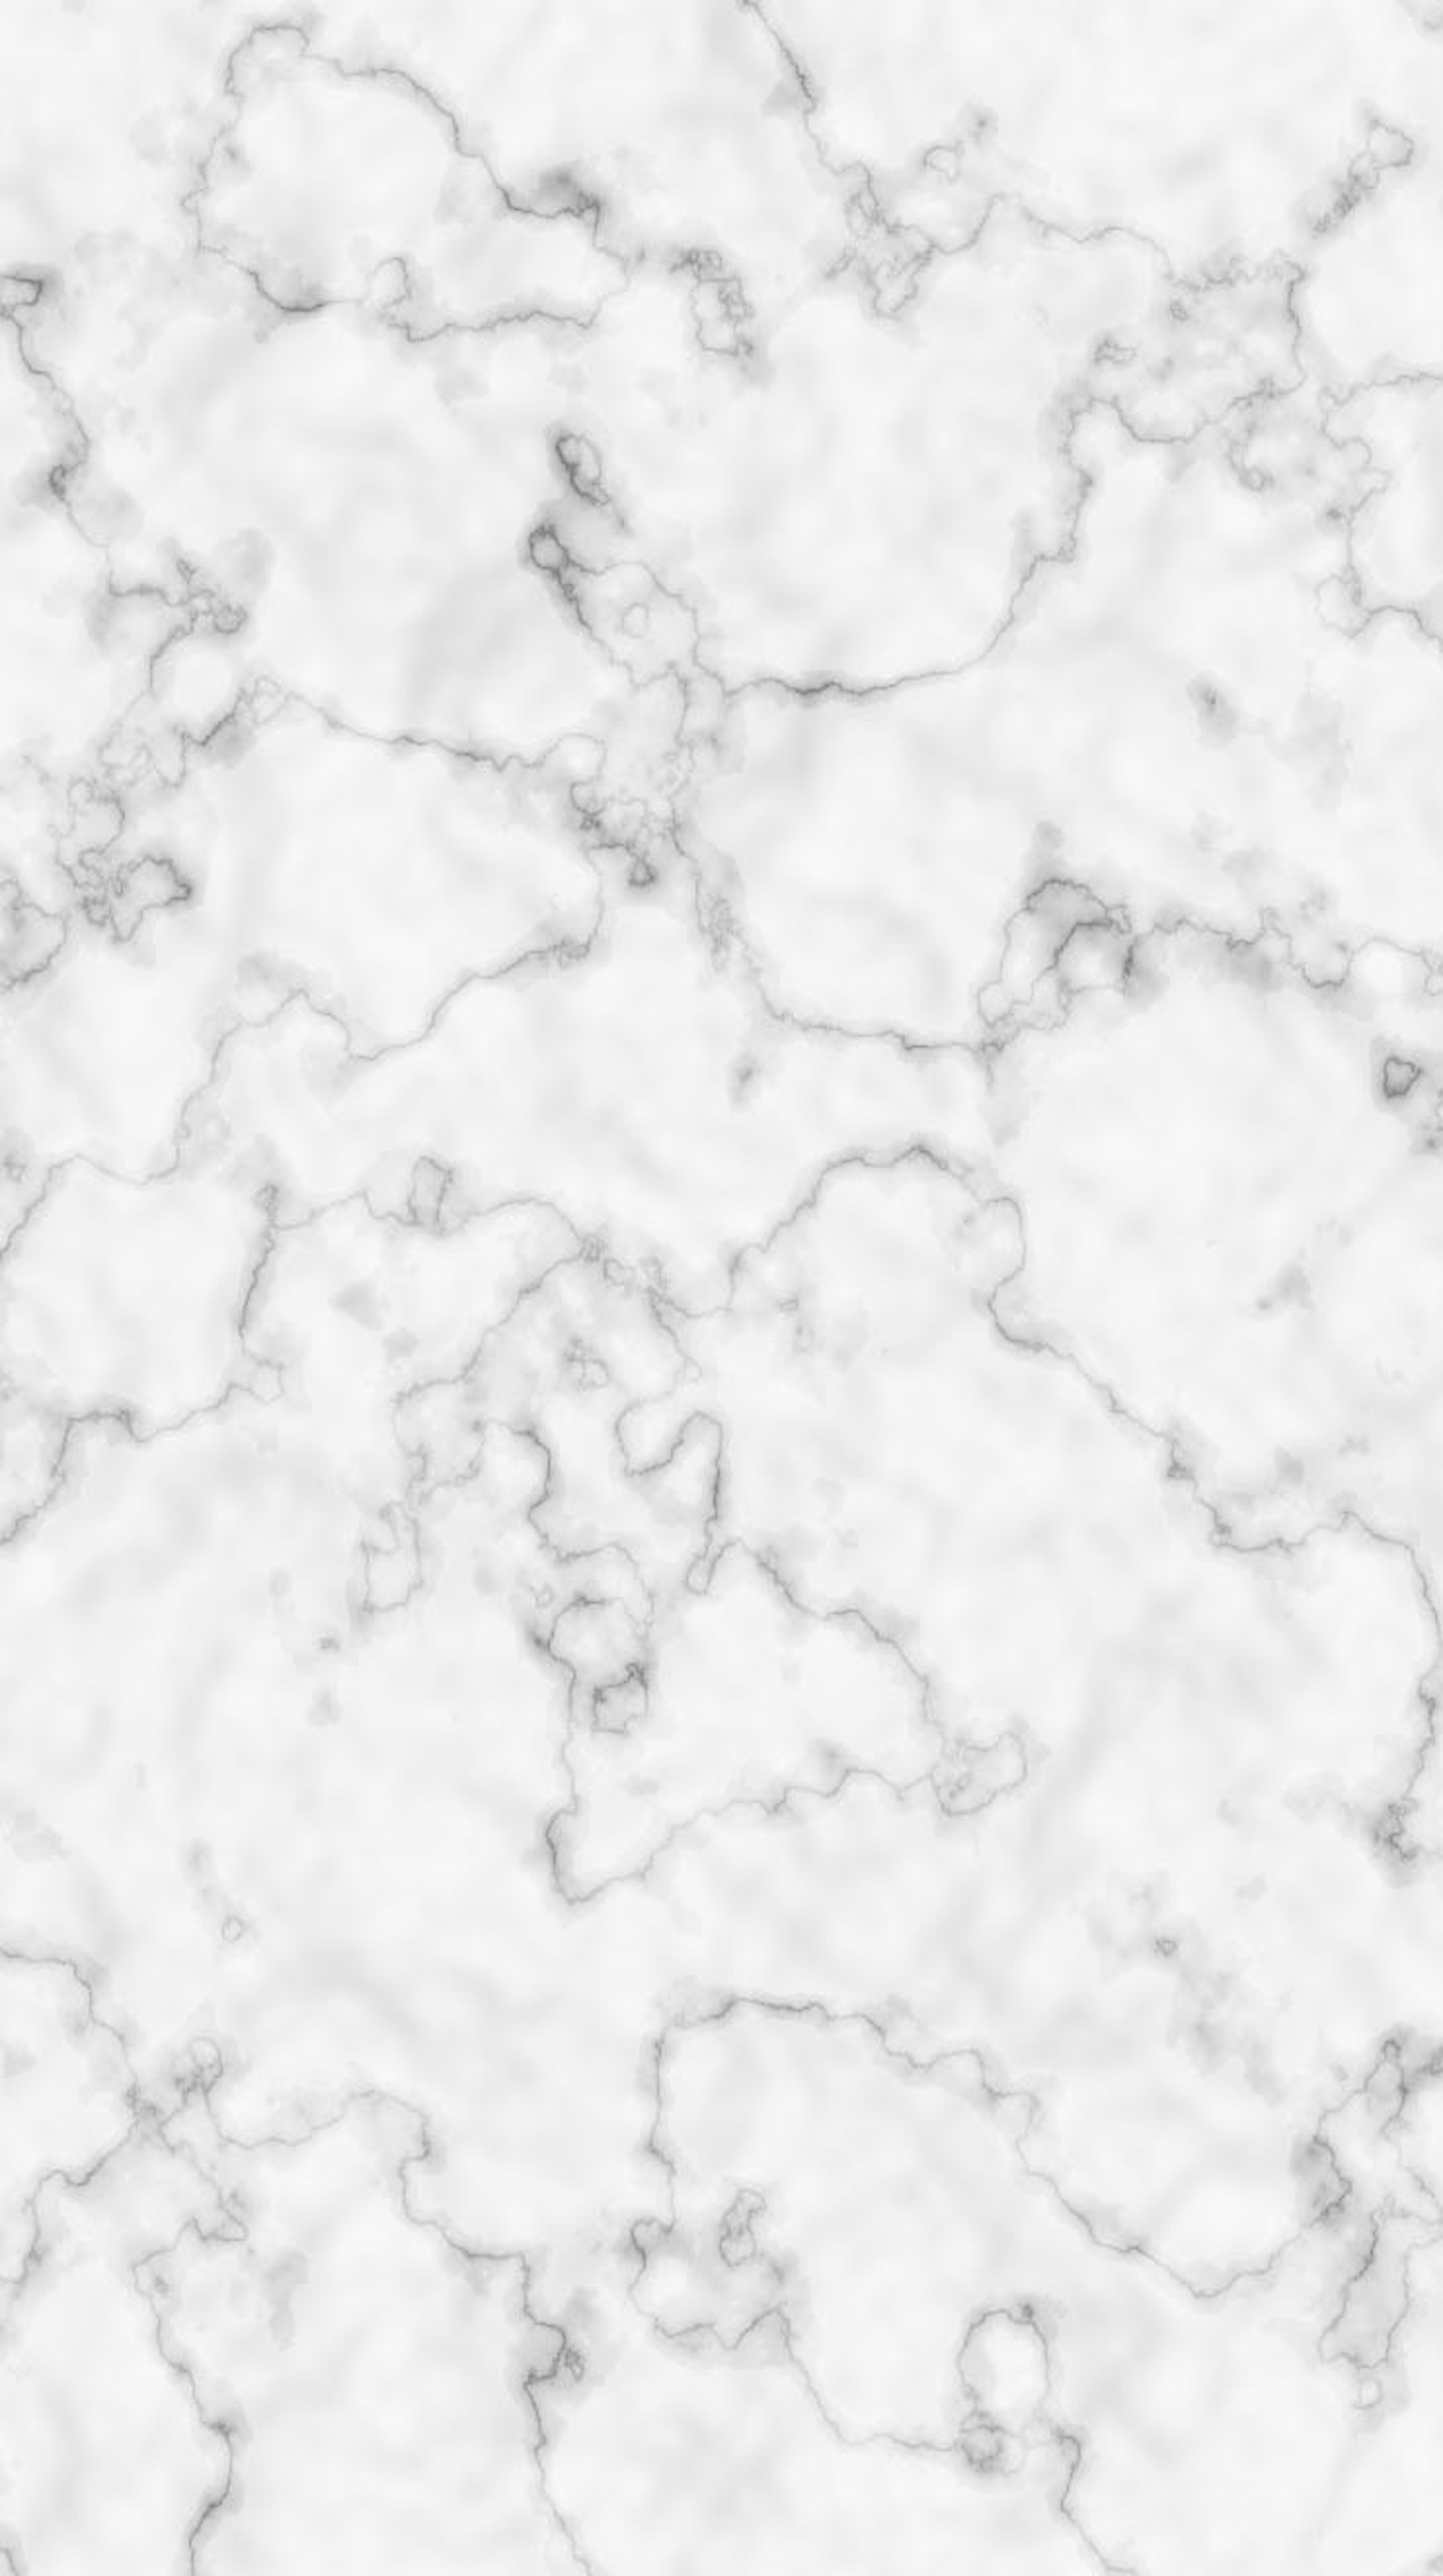 Marble iPhone wallpaper // Beauty and the Chic Fondos de